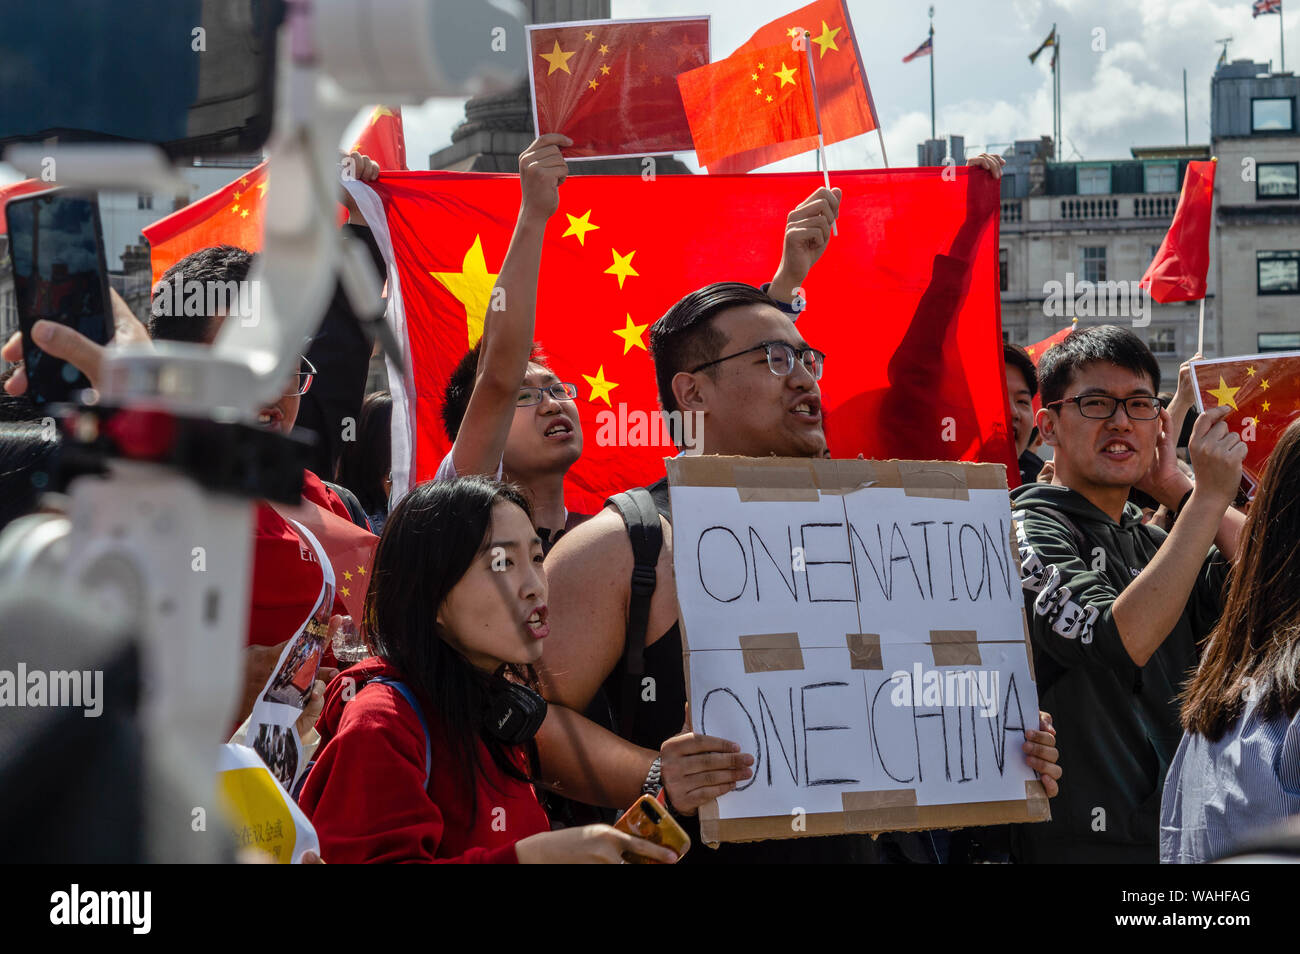 London, United Kingdom - August 17,  2019: Chinese citizens in opposition of the UK Solidarity with Hong Kong Rally. Stock Photo